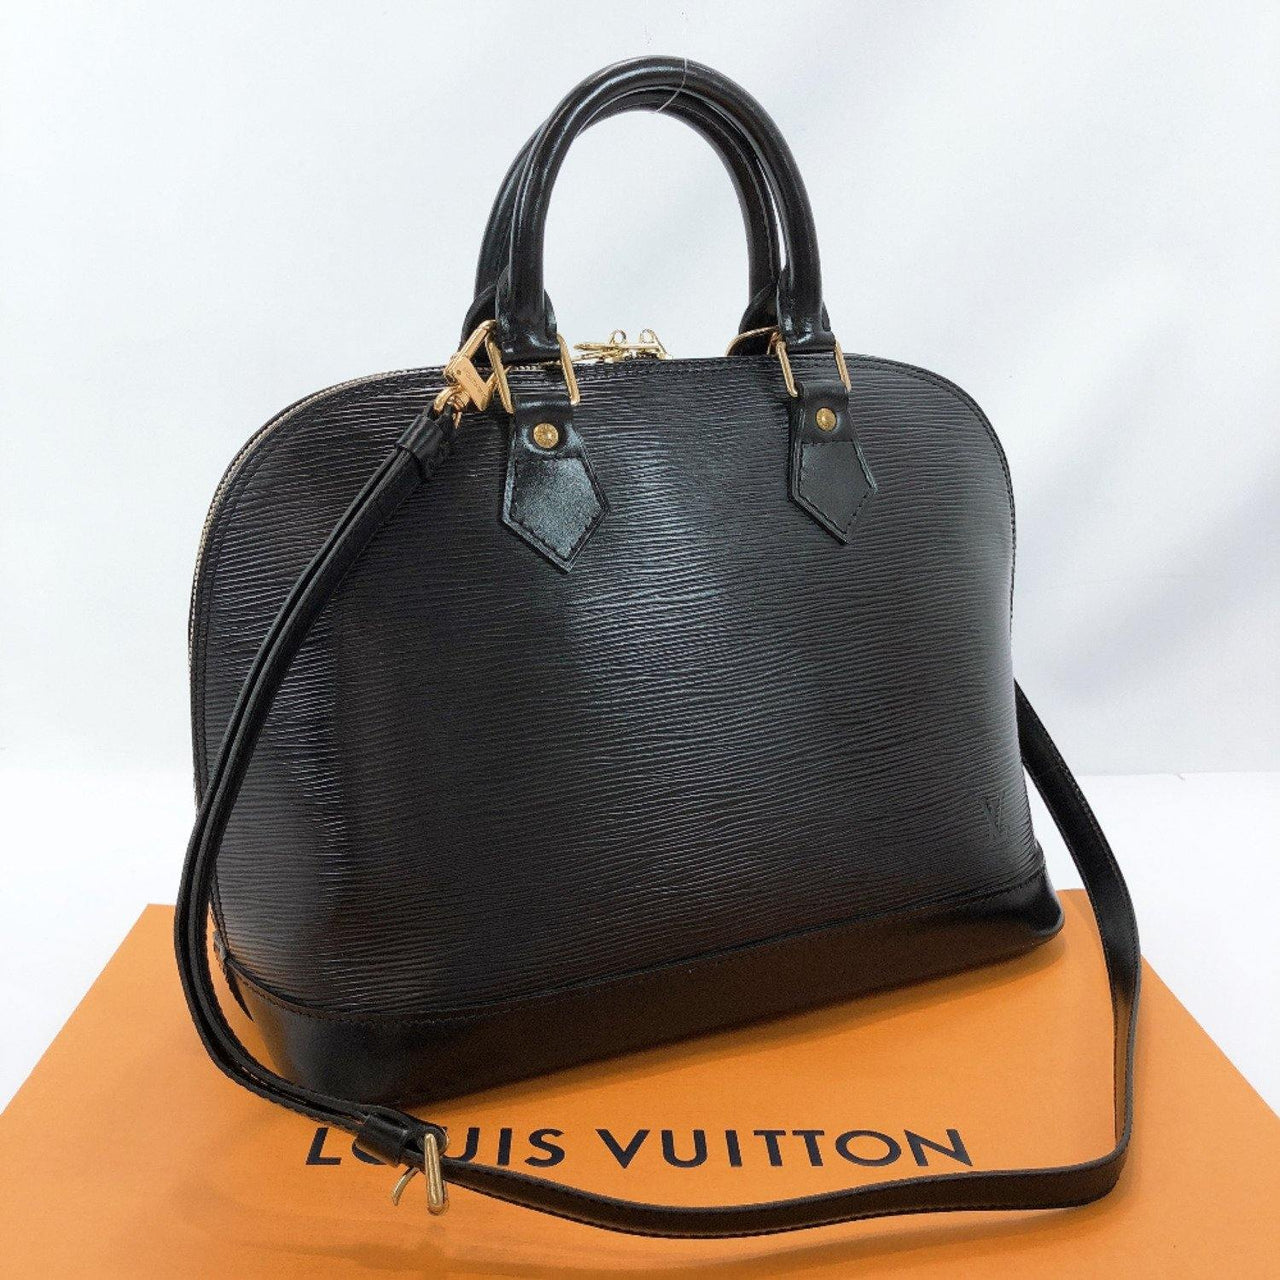 LOUIS VUITTON Handbag M40302 Alma PM Epi Leather black Women Used